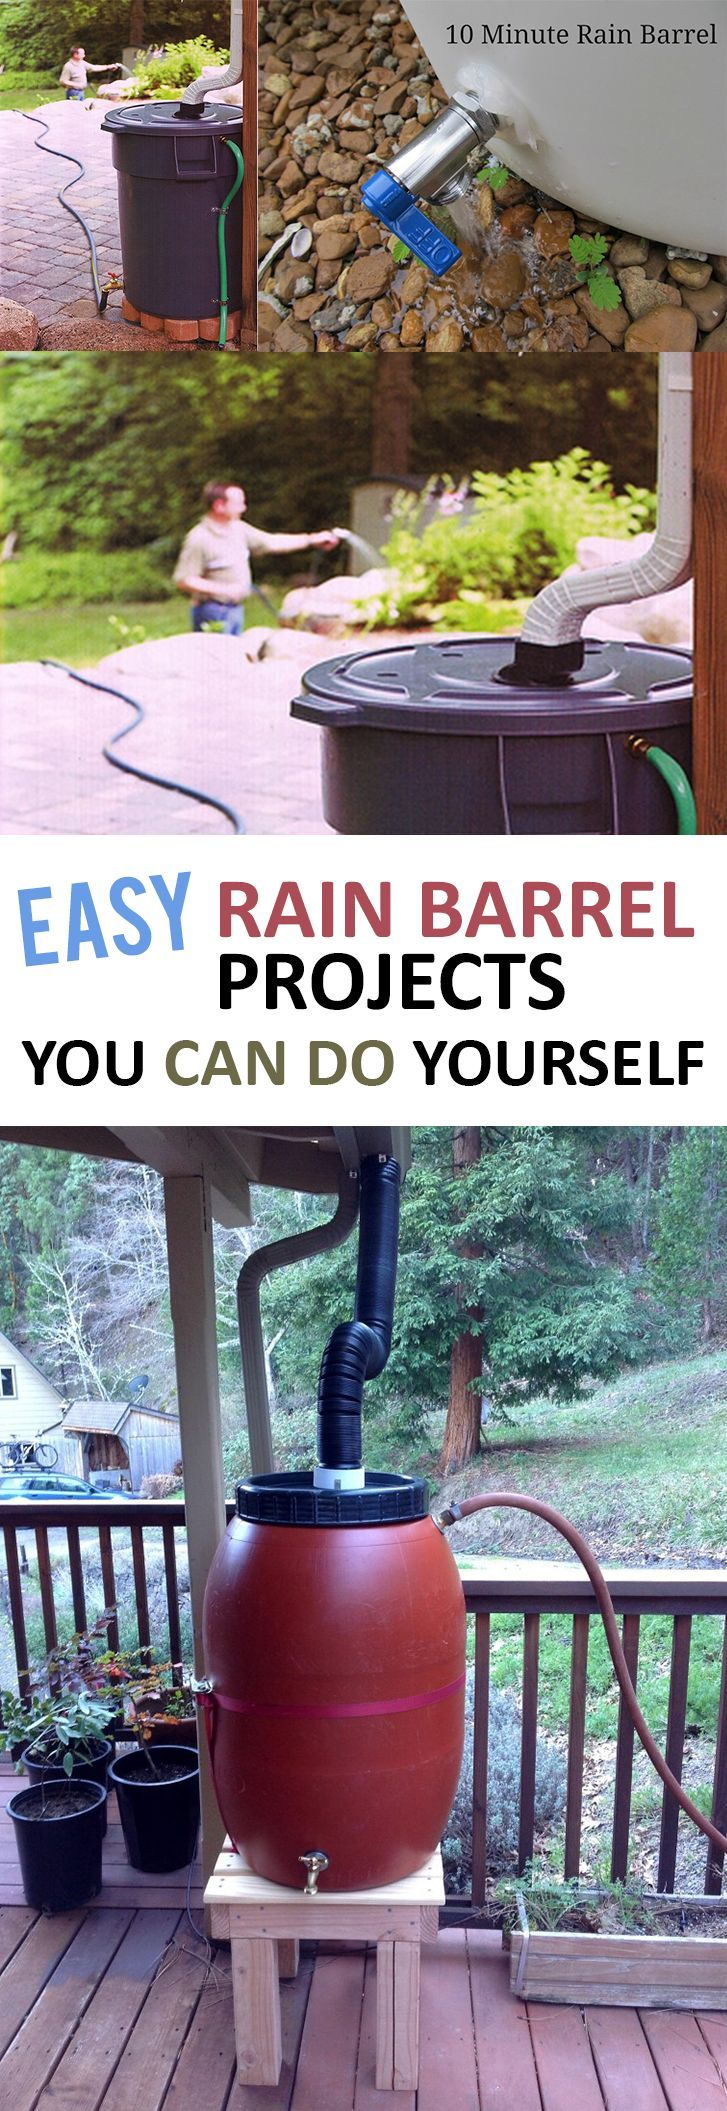 Easy rain barrel projects you can do yourself money hacks easy easy rain barrel projects you can do yourself solutioingenieria Image collections